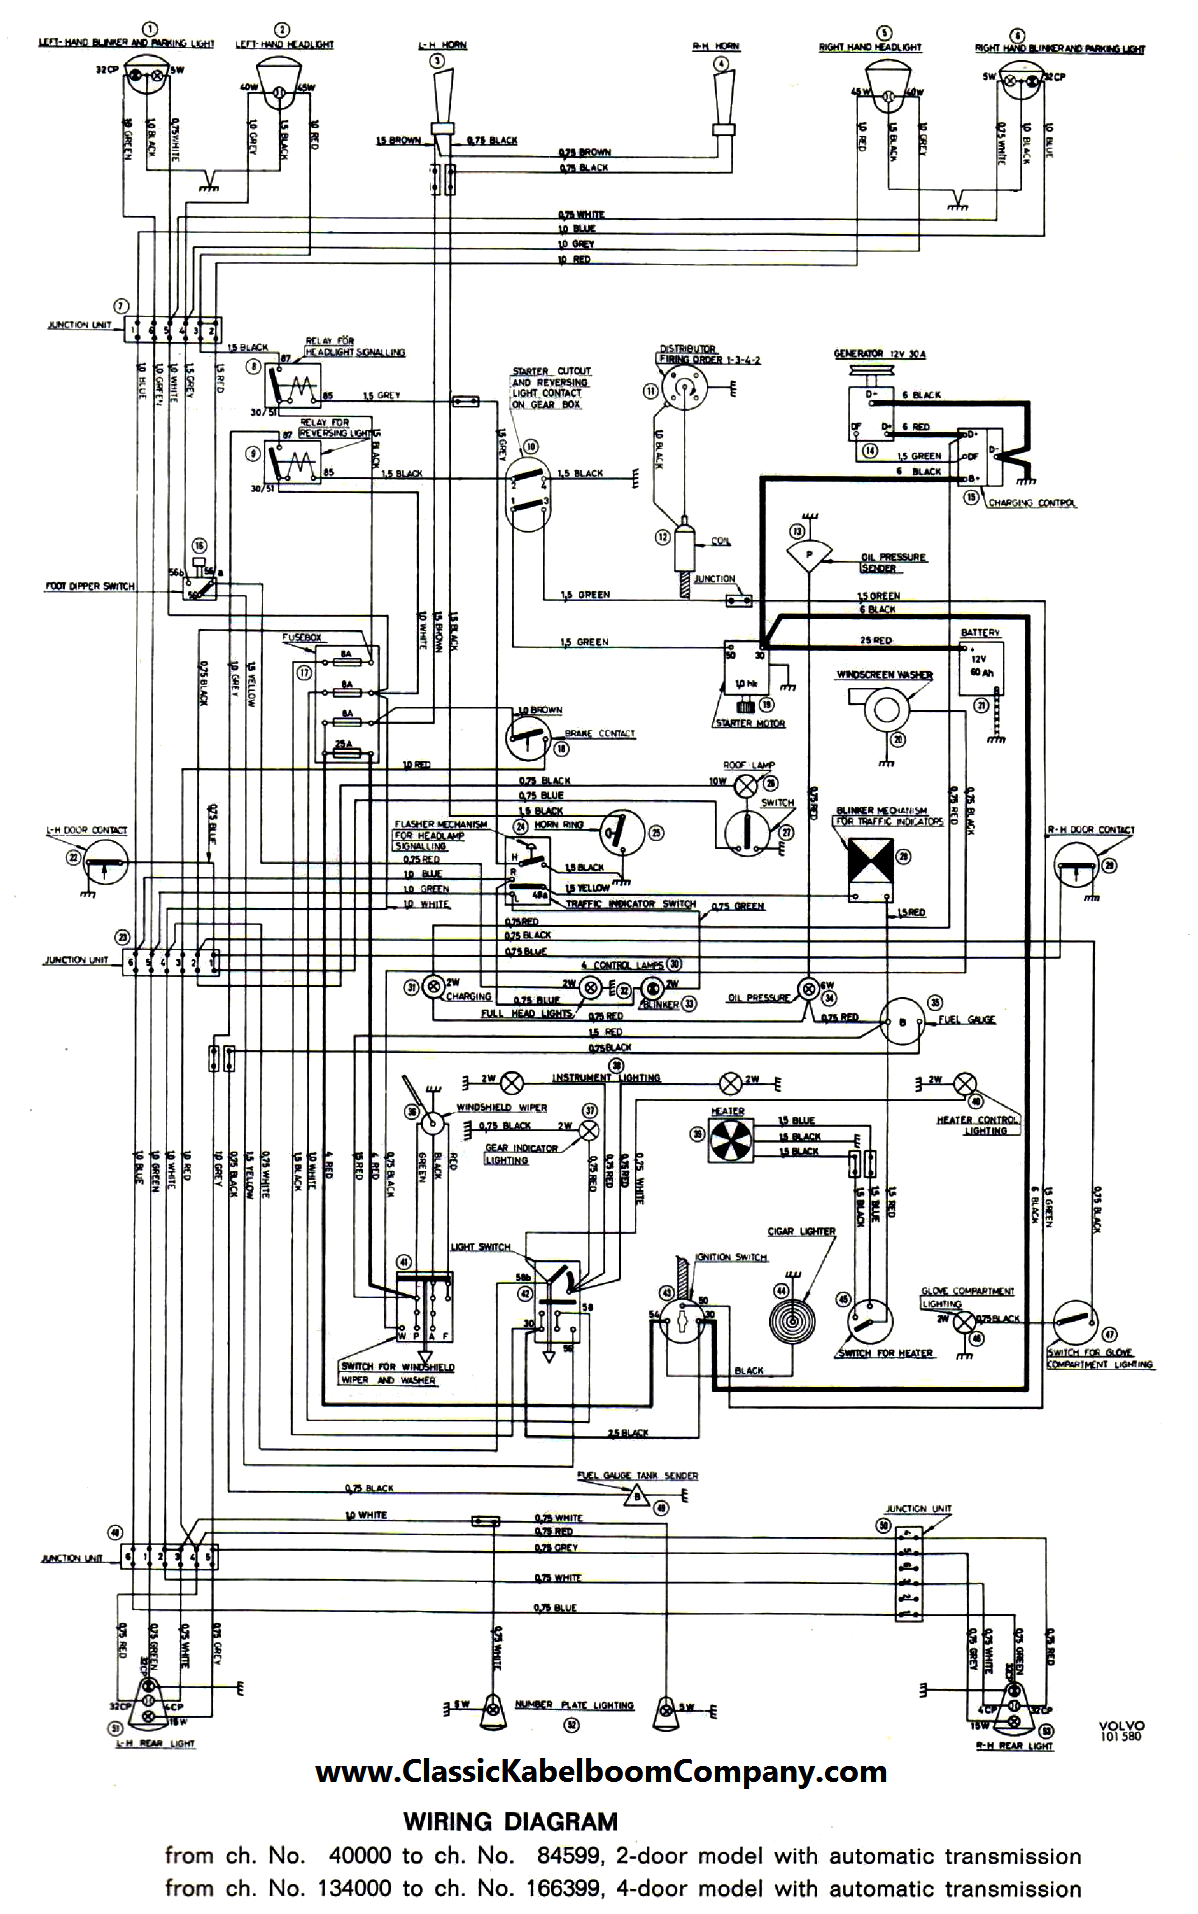 reliance transfer switch wiring diagram - 28 images - electrical ...